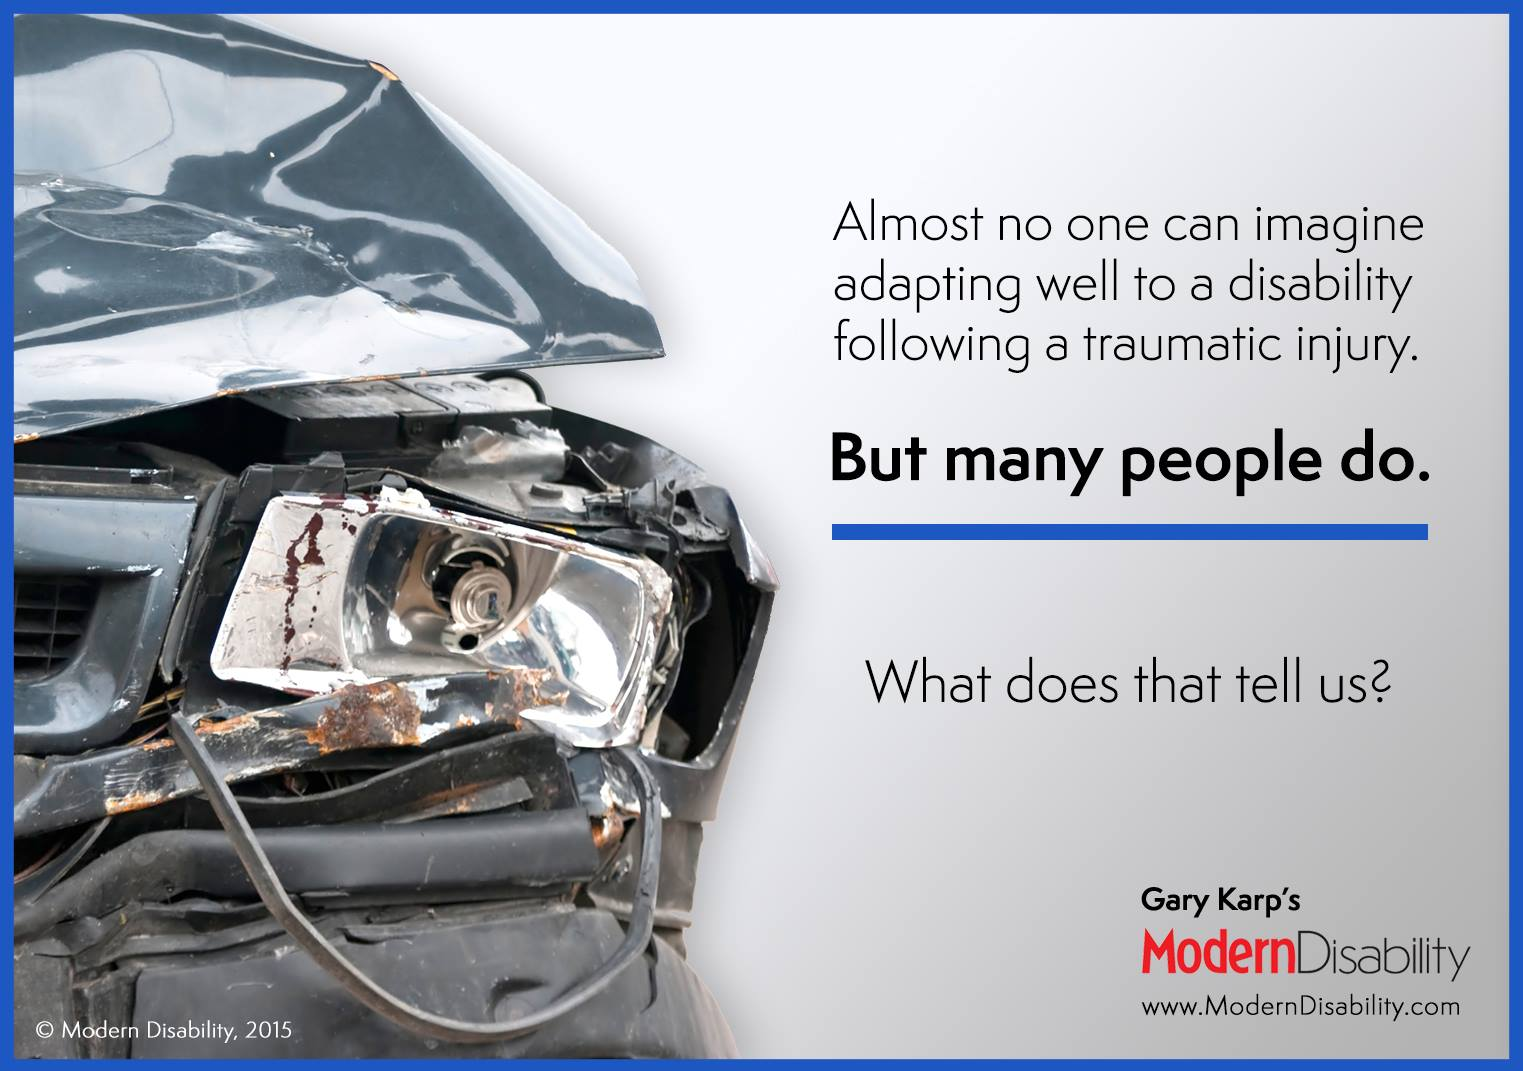 "Photo of the front end of a wrecked automobile. ""Almost no one can imagine adapting well to a disability following a traumatic injury. But many people do. What does that tell us?"